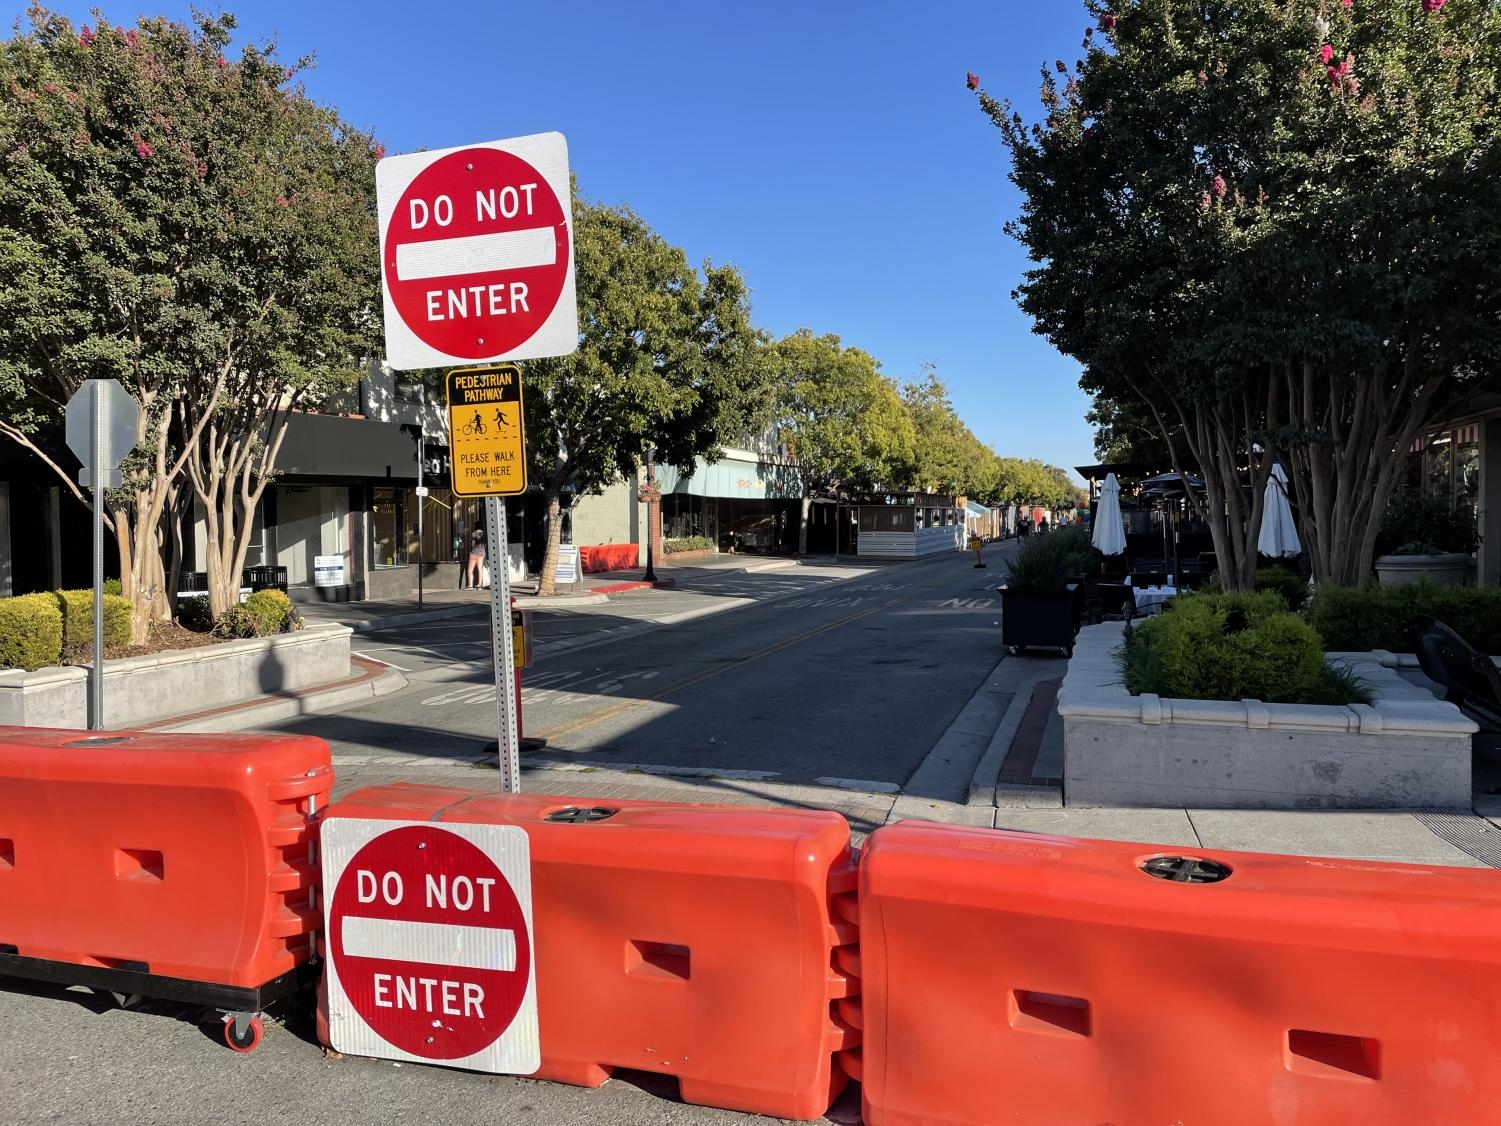 """The city of San Carlos closed off Laurel Street, making the street pedestrian-only access. """"Some of the roads, like on Laurel street, were closed to accommodate outdoor dining and parklets to help our businesses,"""" Haque said."""